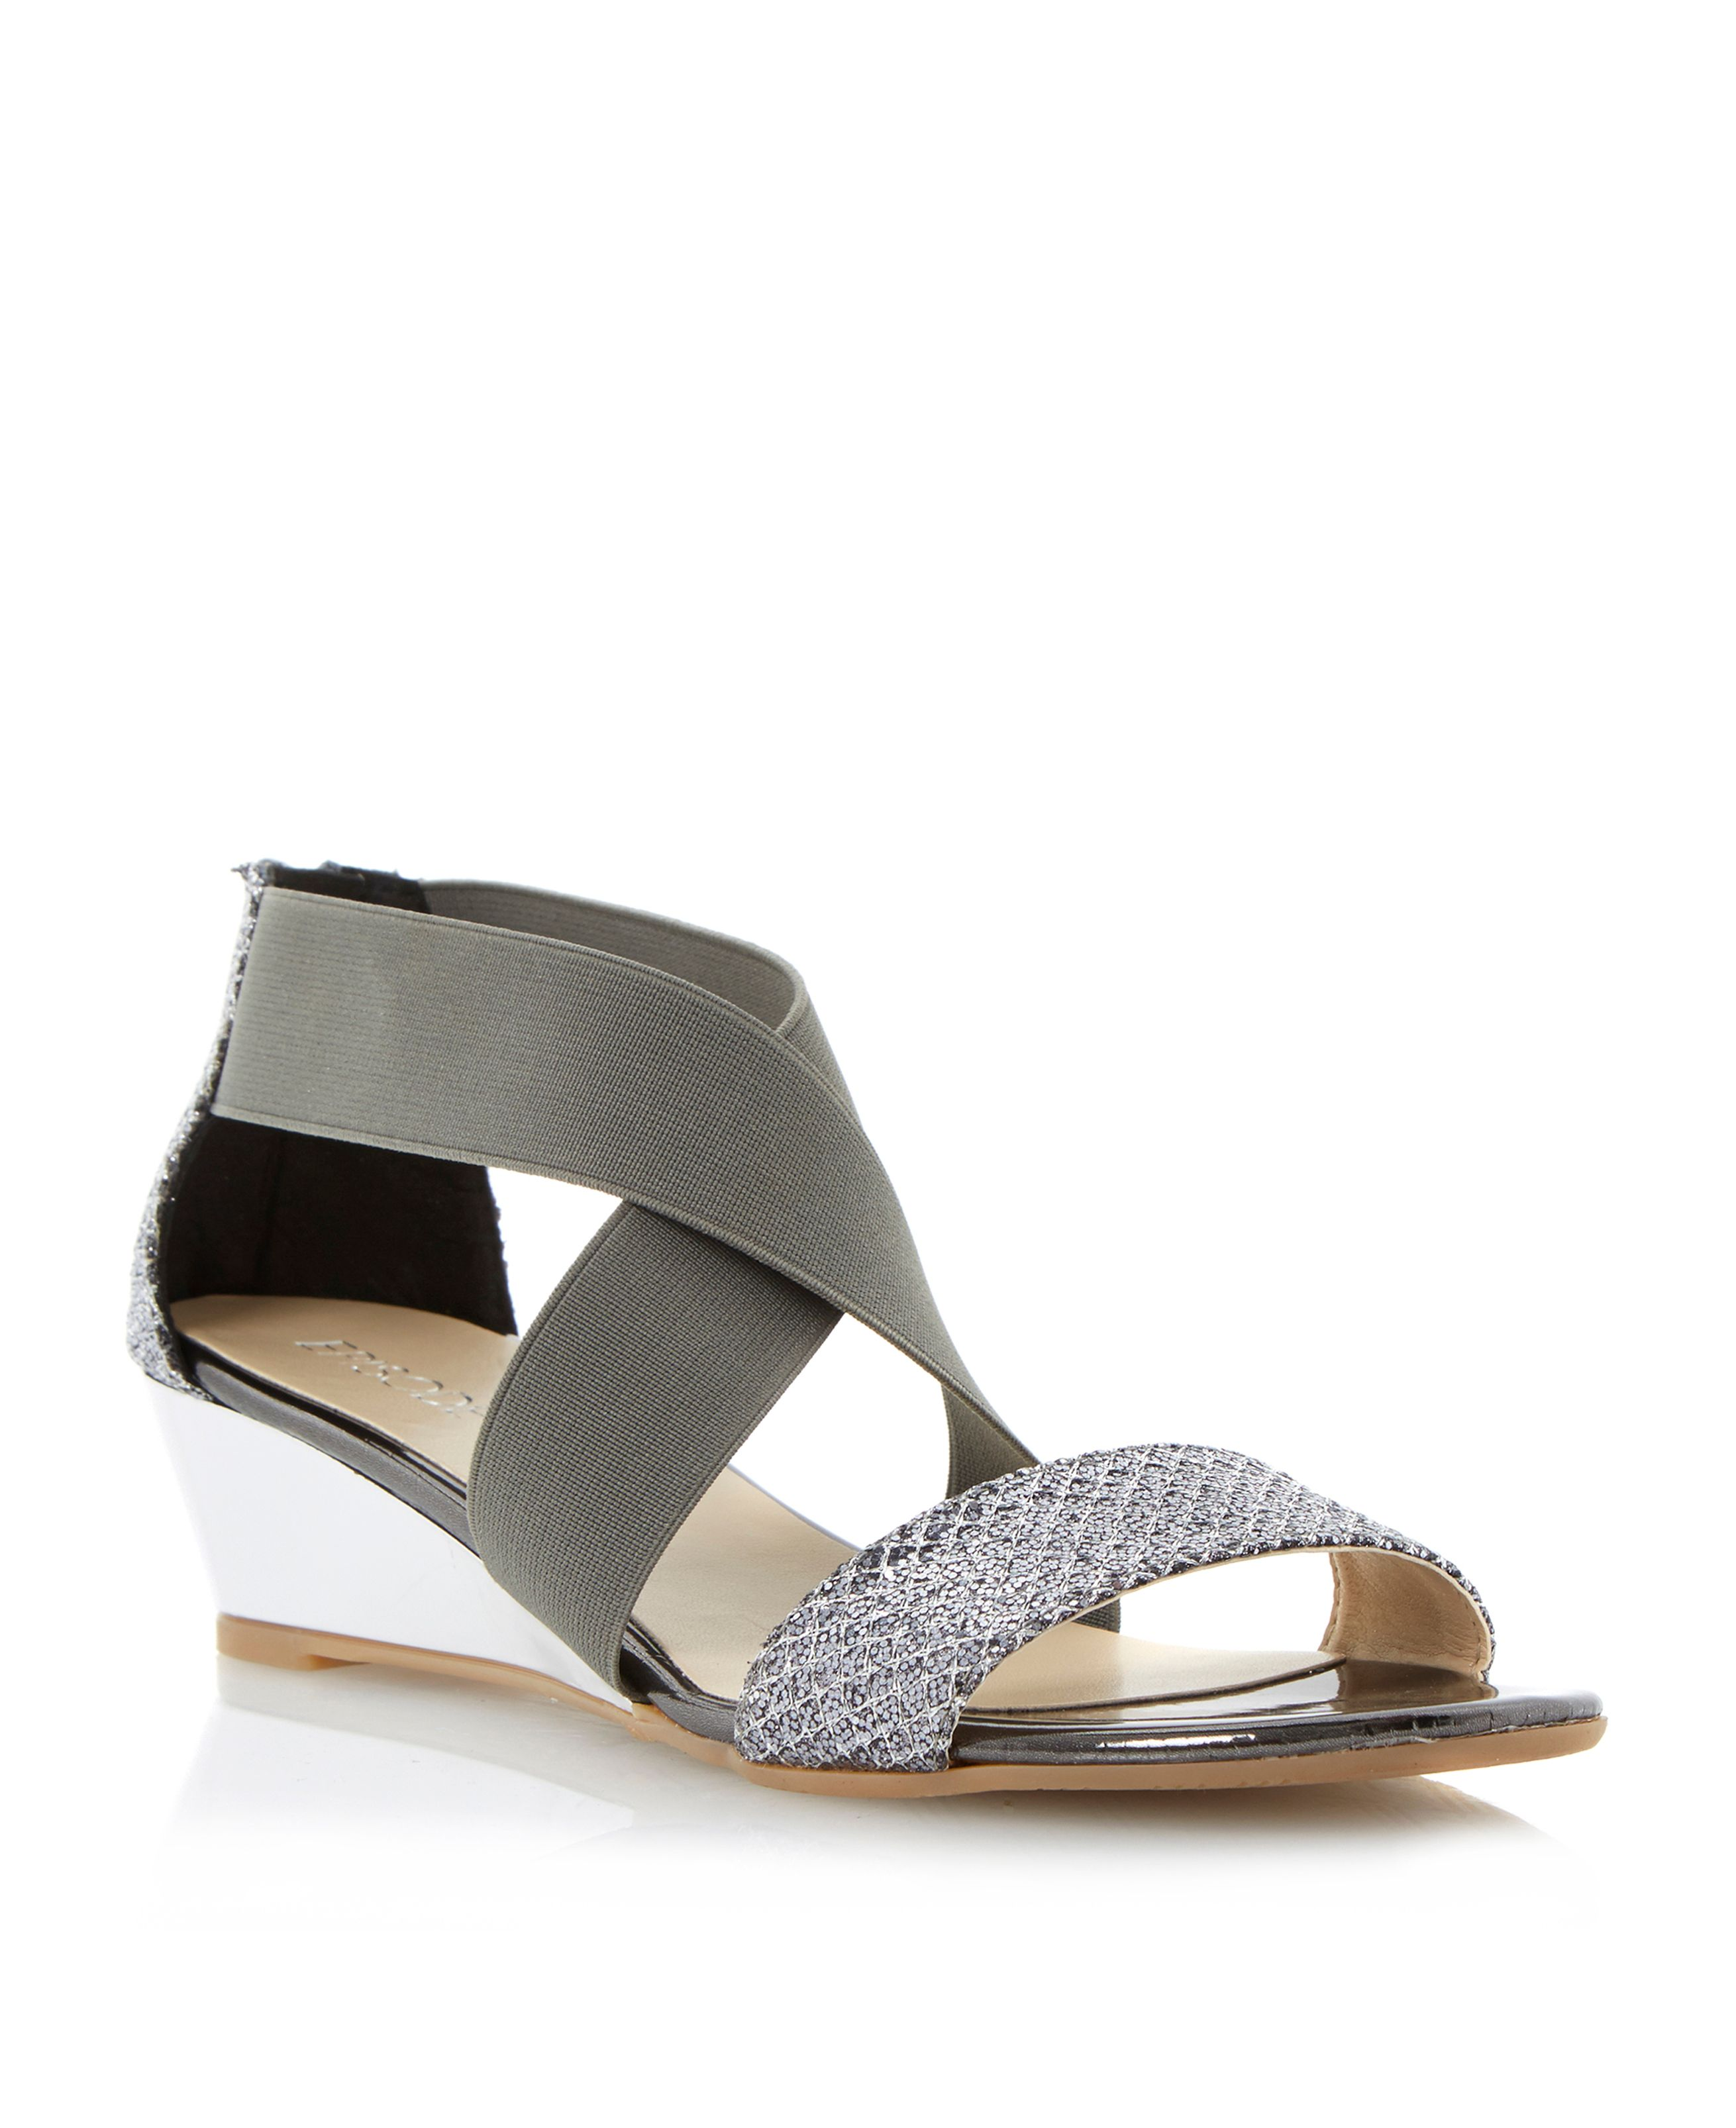 Gila wedge strappy sandals